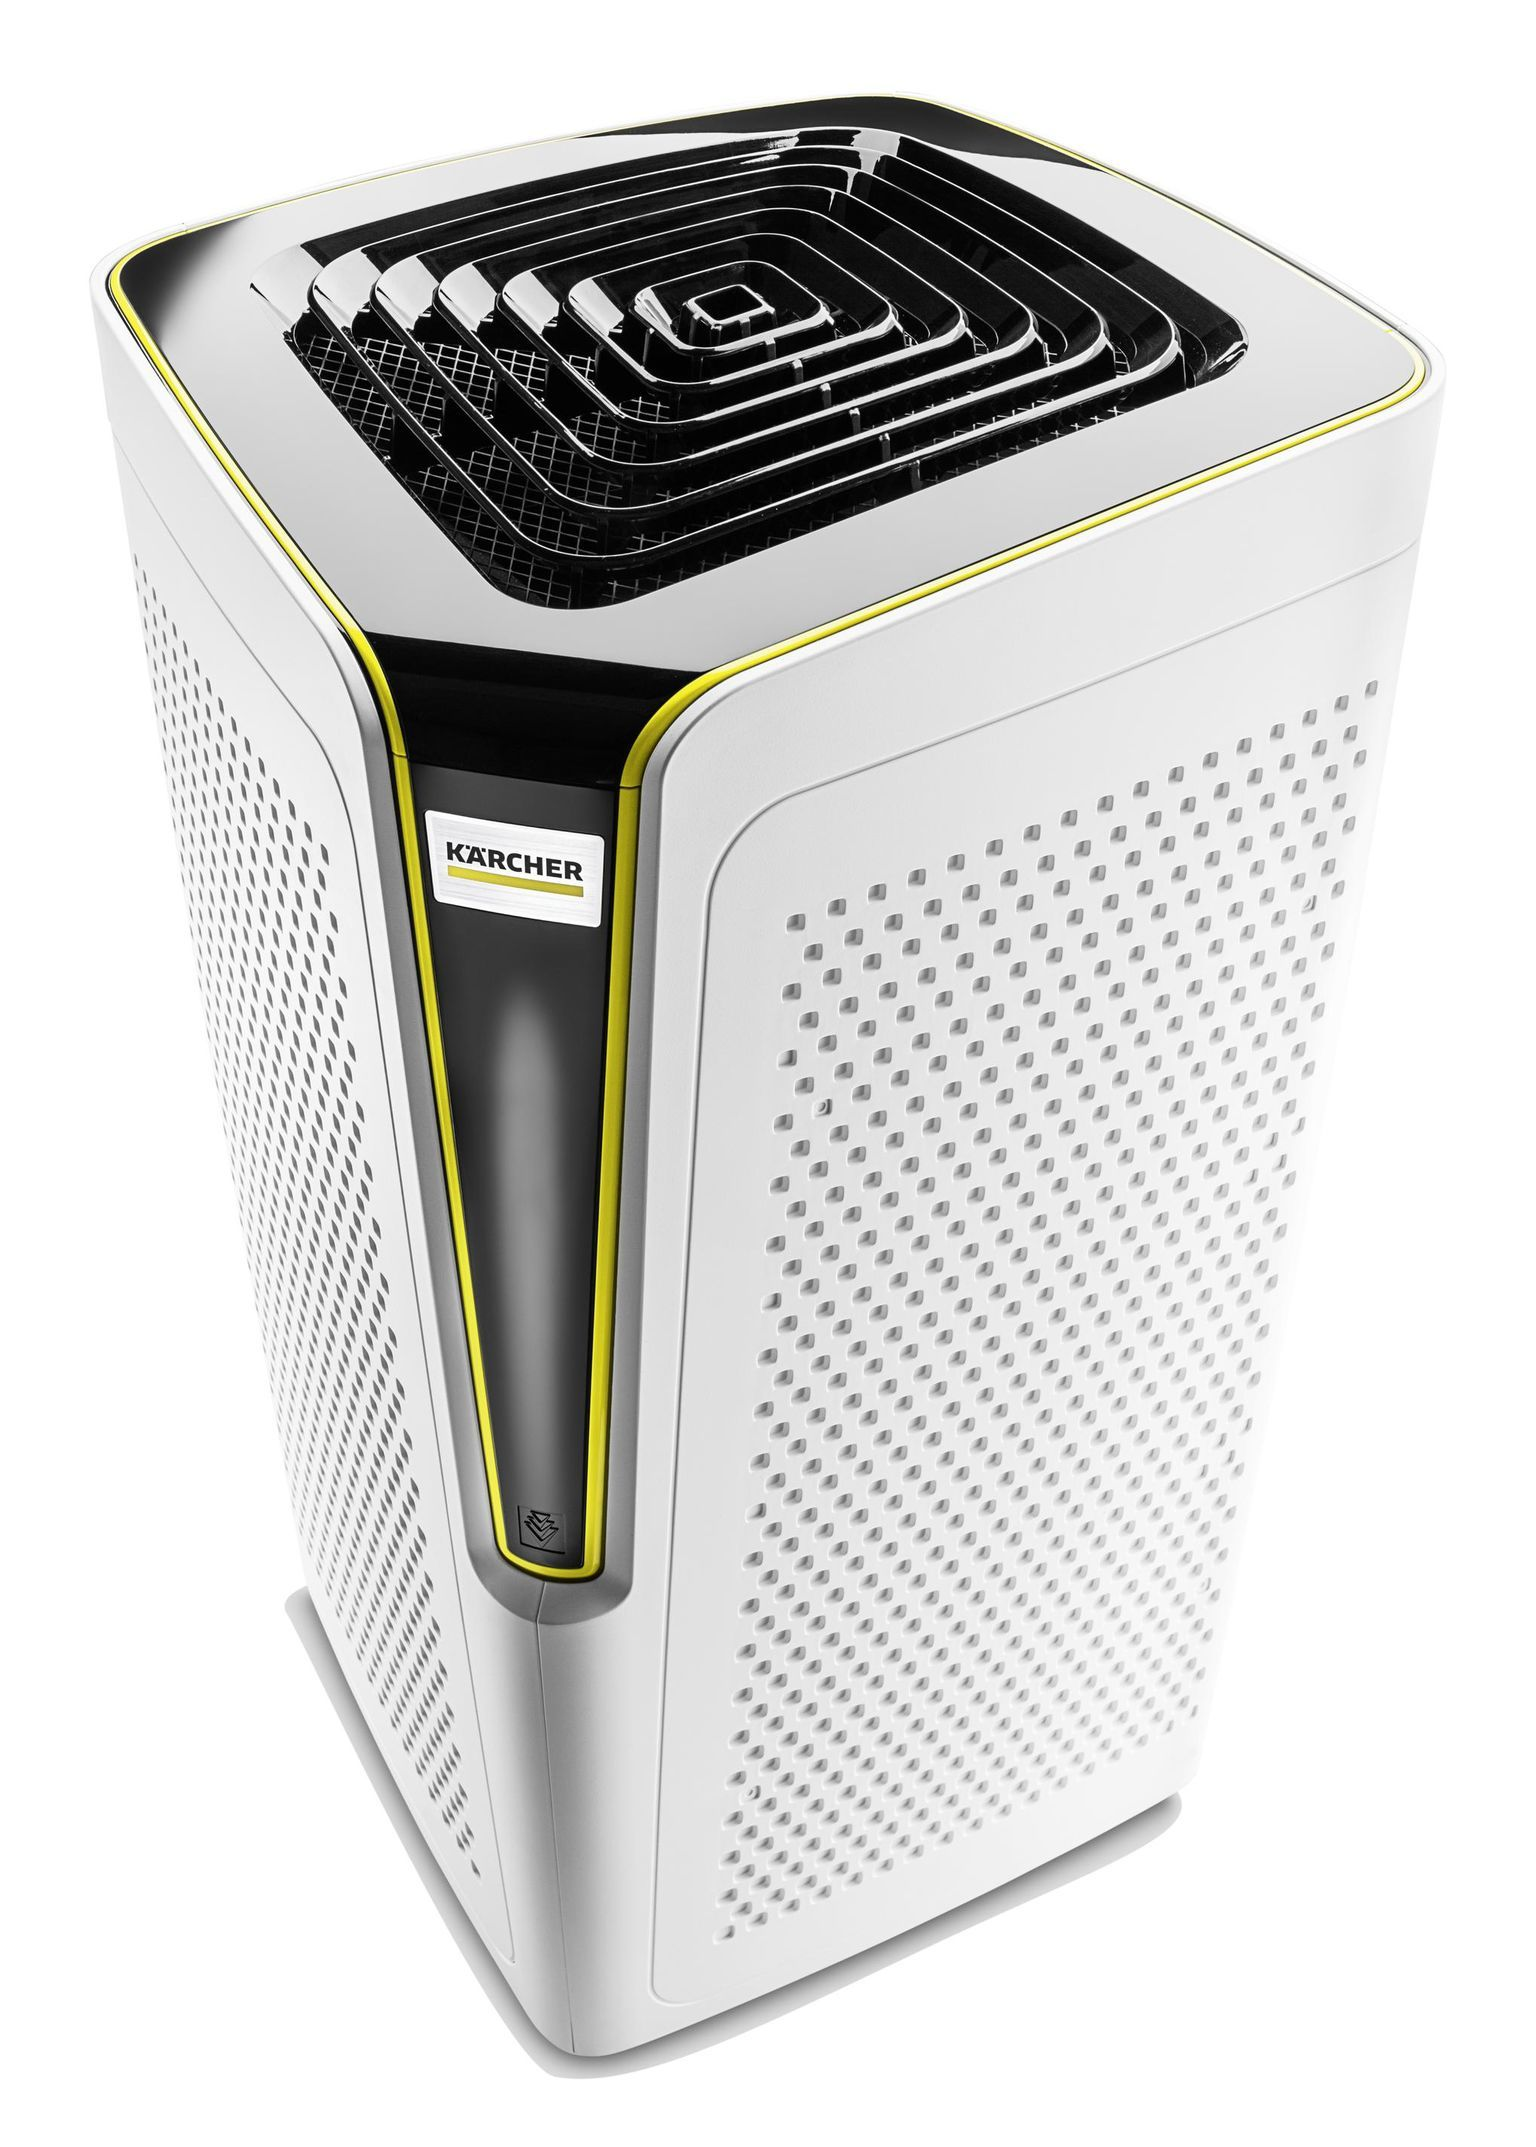 KA 5 Air Purifier Air purifier, Air cleaner design, Purifier